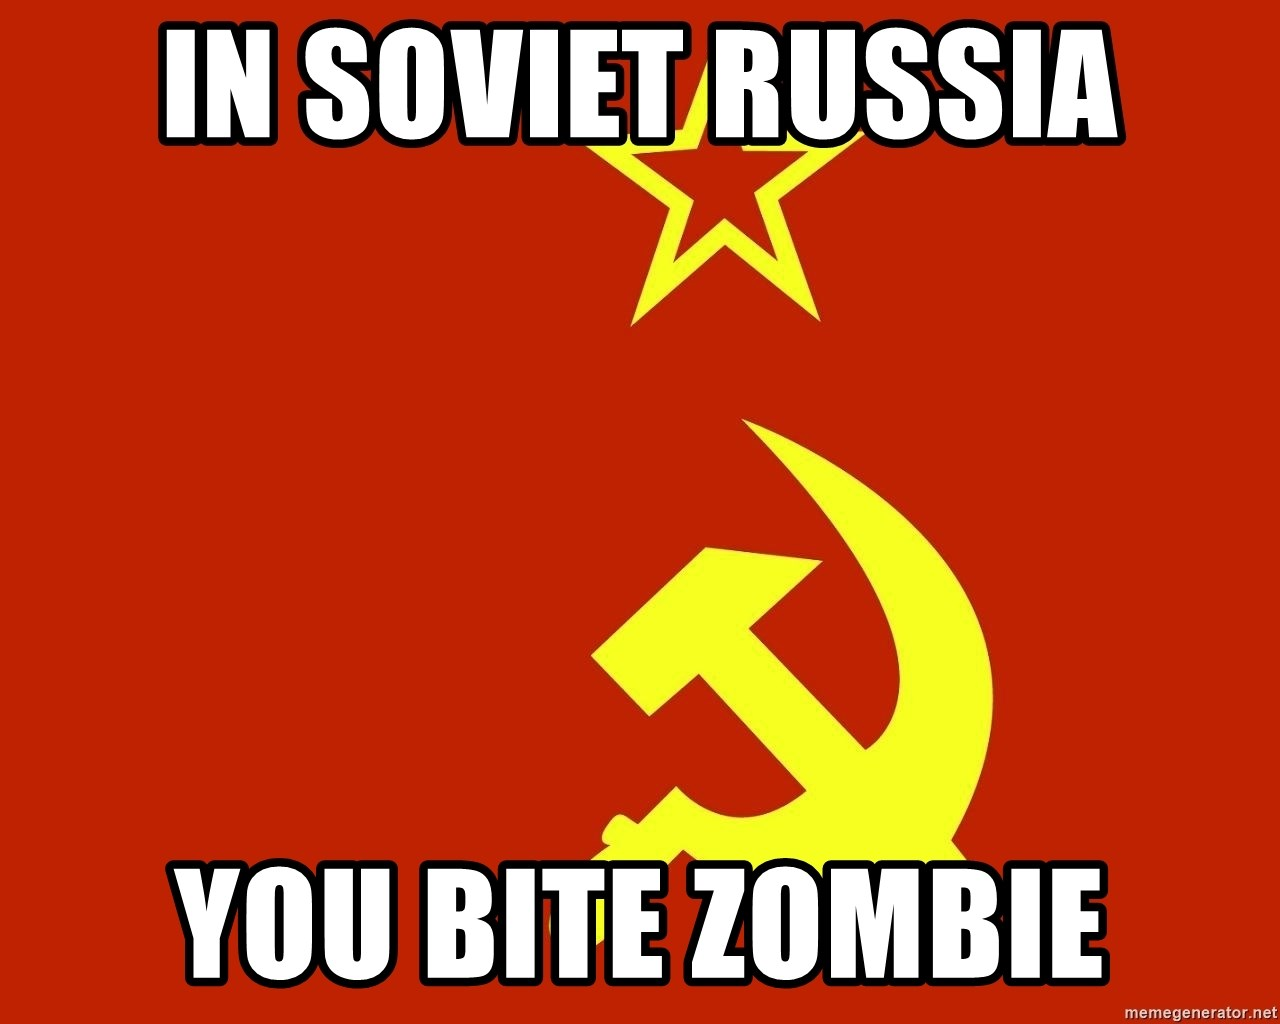 In Soviet Russia - In soviet russia yOU BITE ZOMBIE